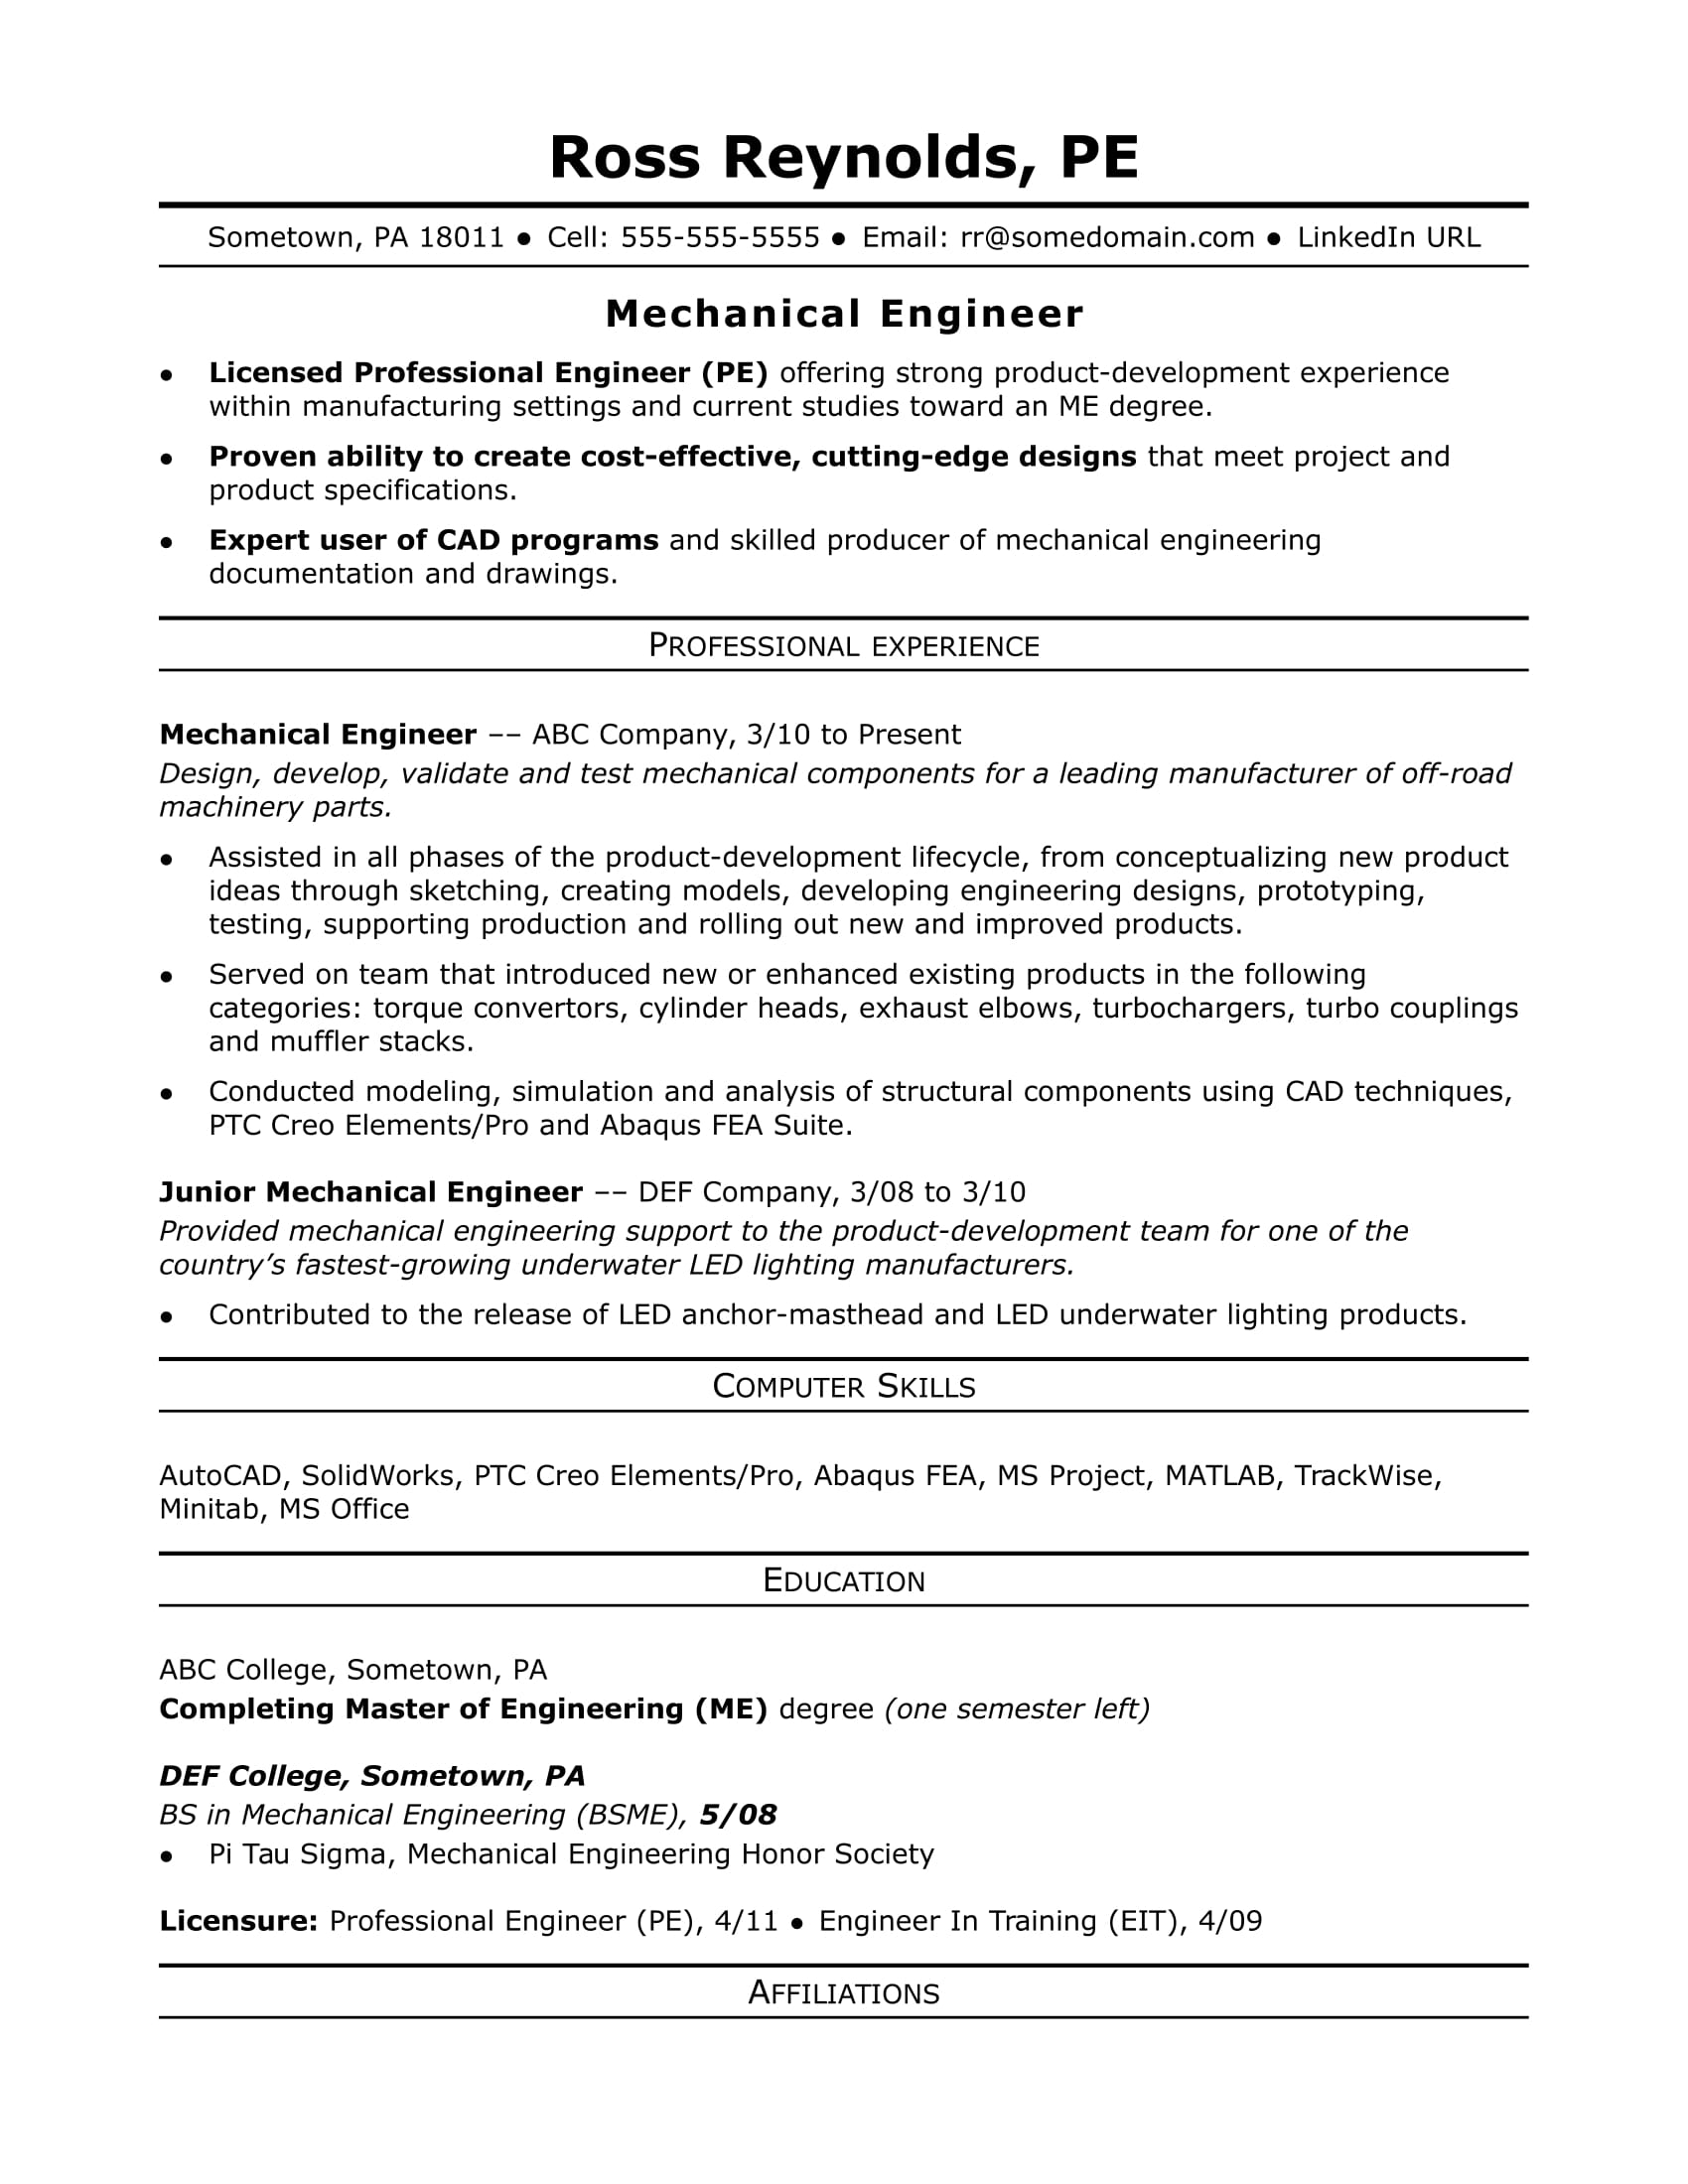 sample resume for a midlevel mechanical engineer - Mechanical Engineer Resume